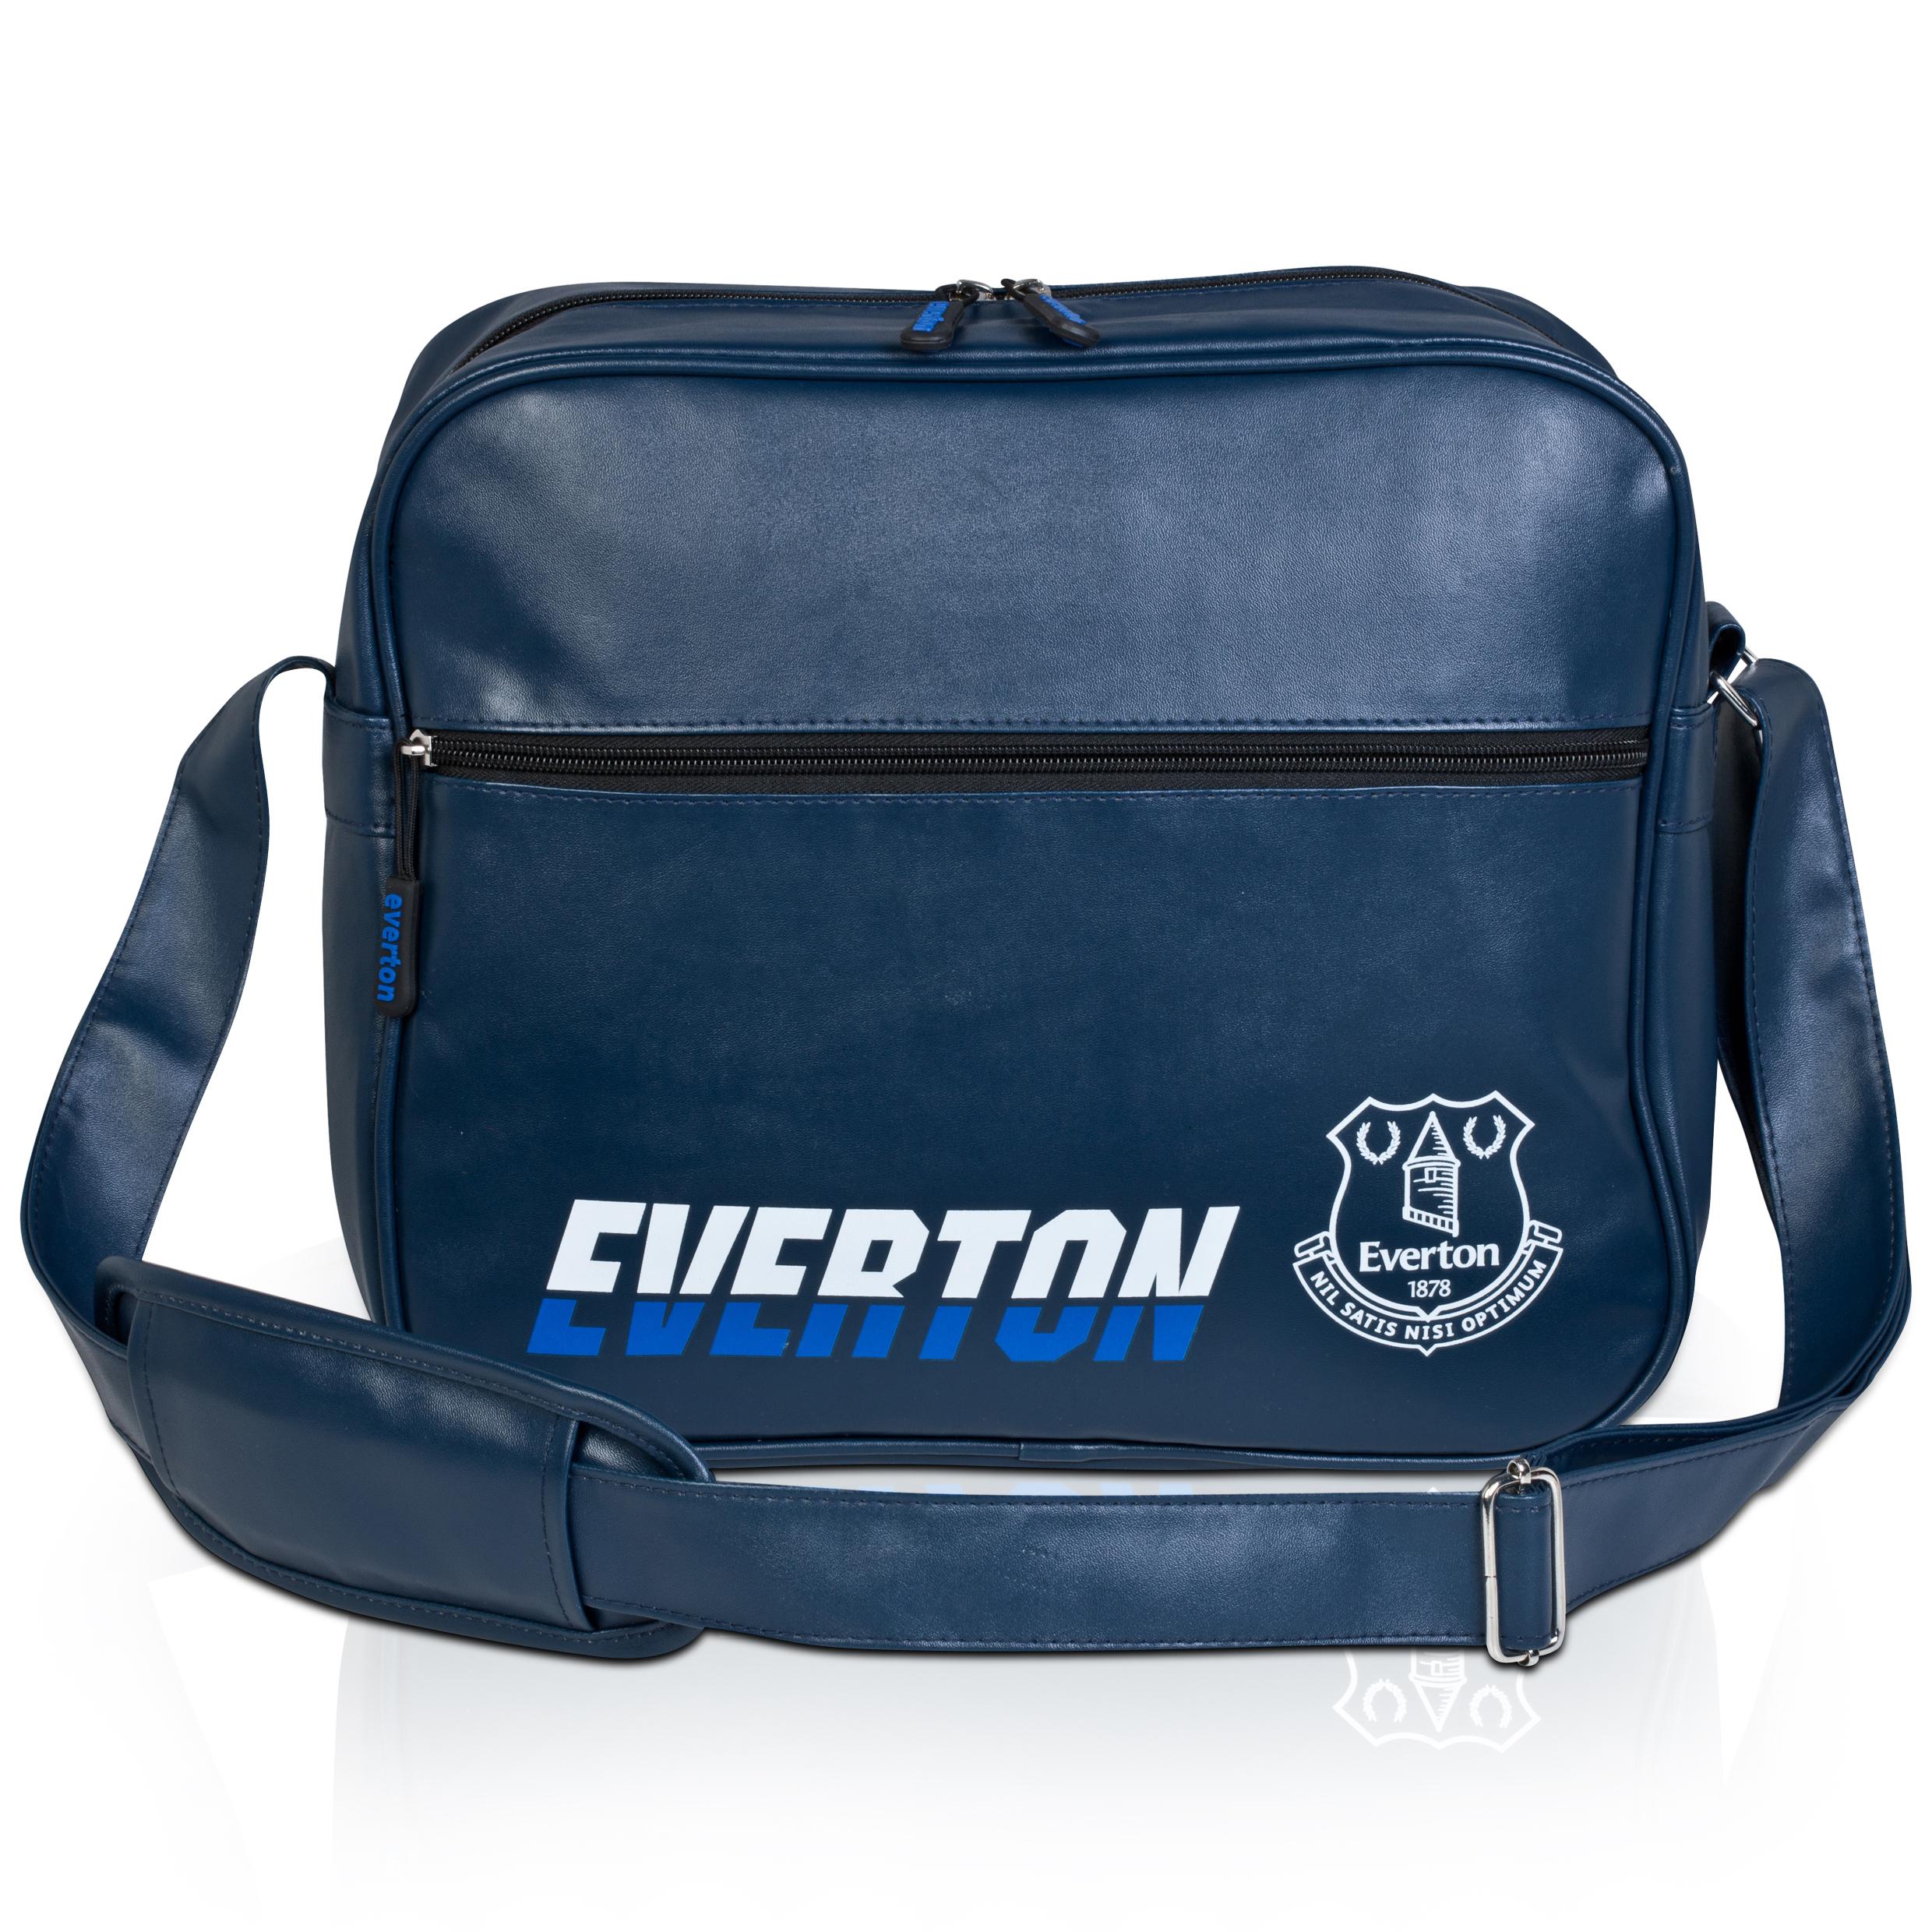 Everton Retro Messenger Bag